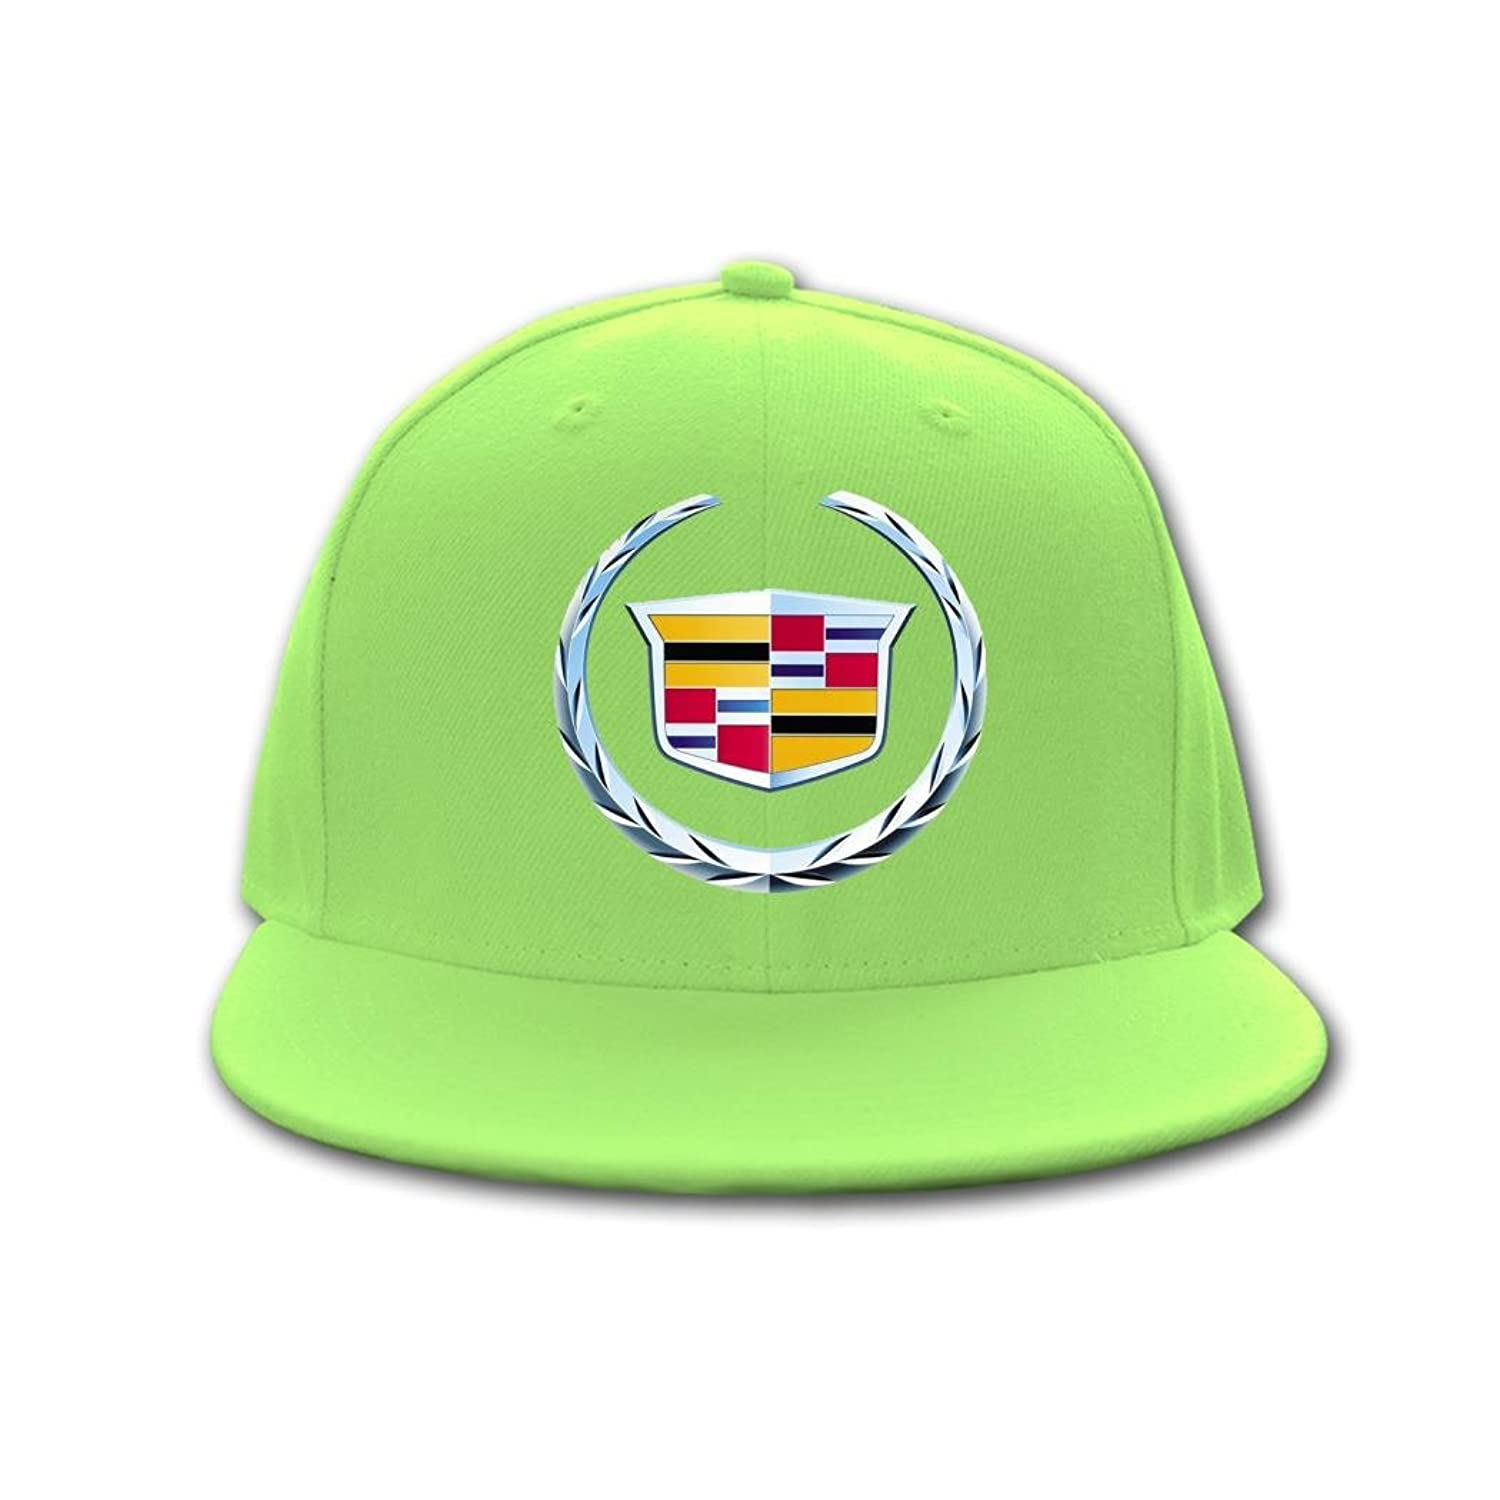 2016 Cadillac Logo Unisex and Adjustable Snapback Hip-hop Caps Sun Hat